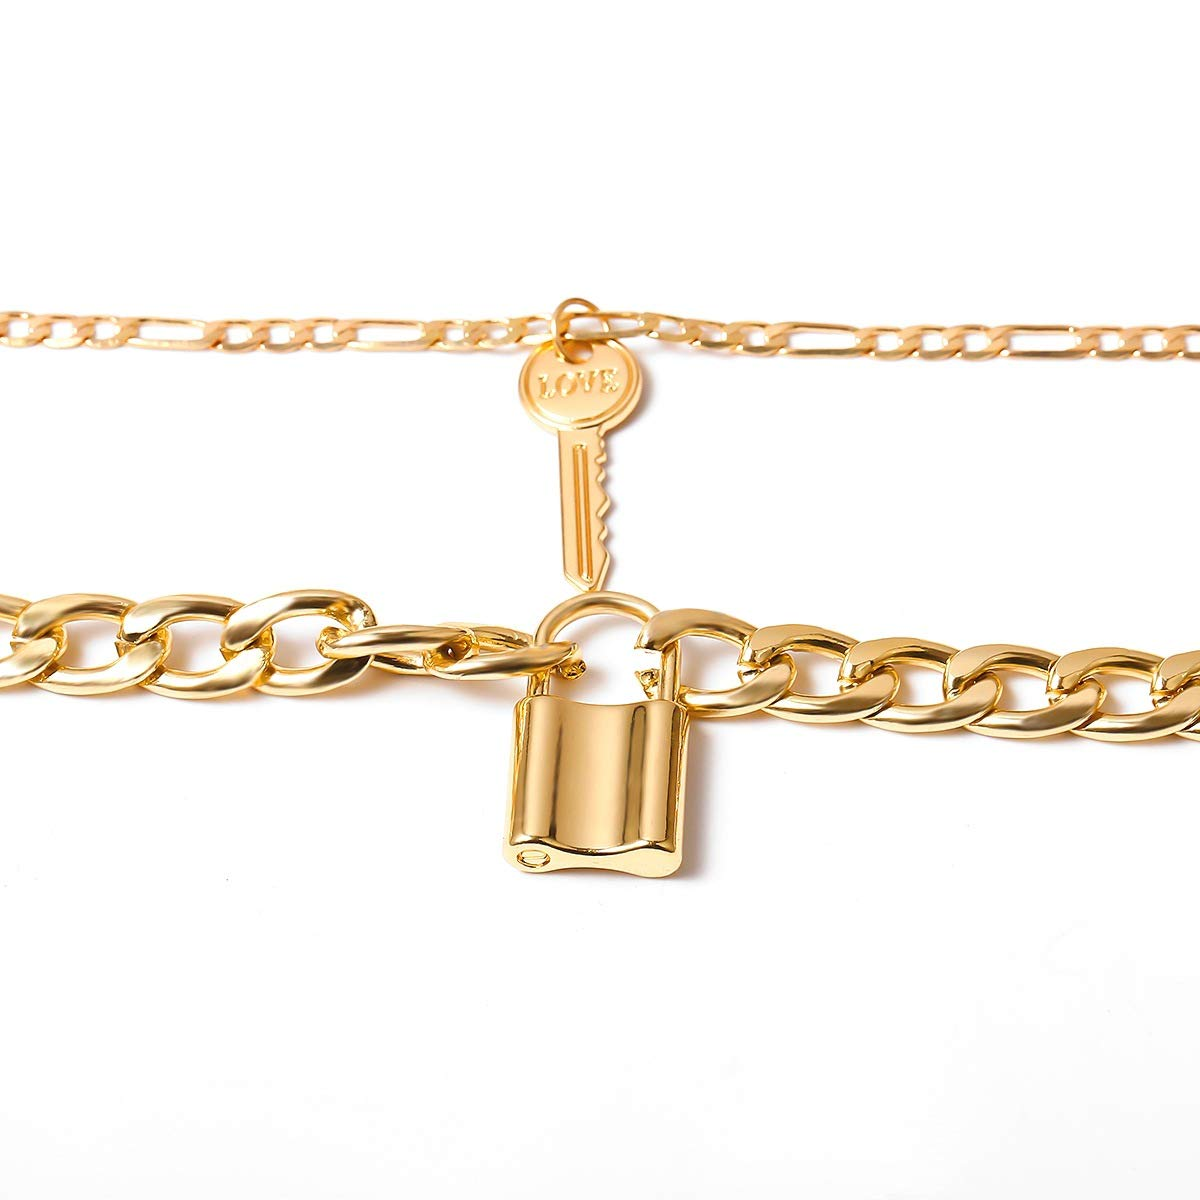 fxmimior Lock Chain Necklace for Women Key Pendant Collar Choker Punk Jewelry for Party (Gold)